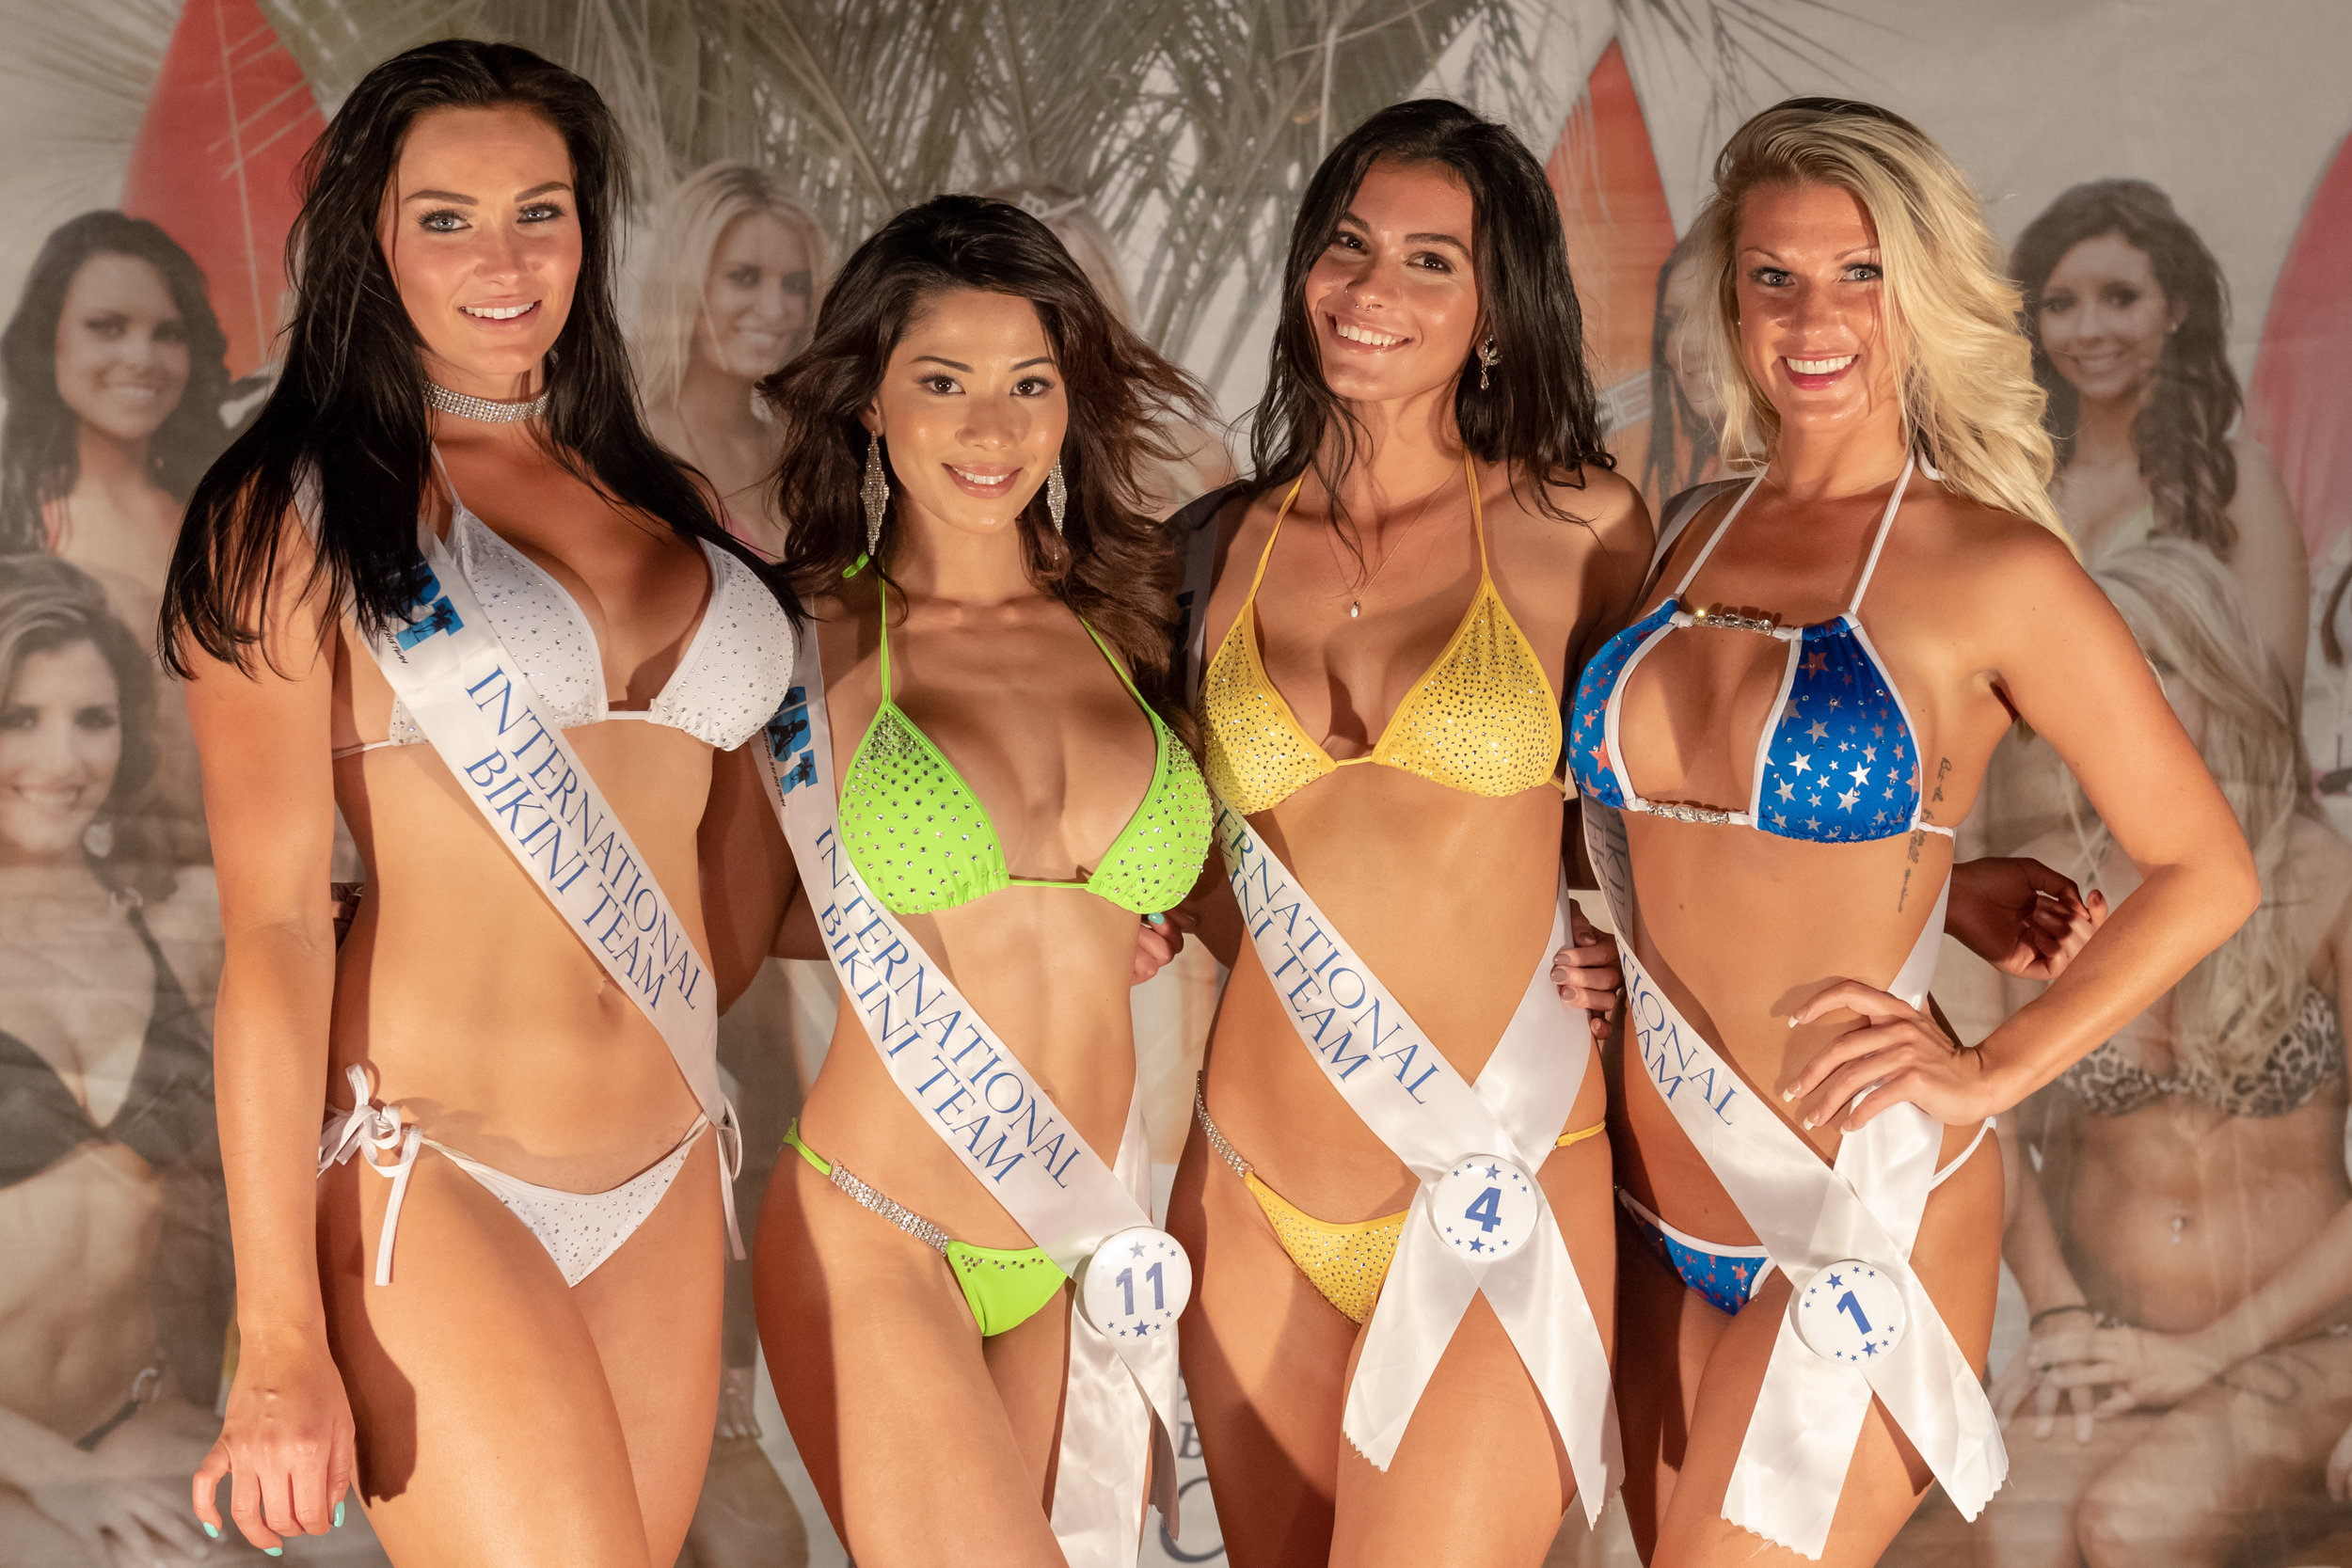 Winners from Preliminary Round 2 of the 2018 @coastaledge Miss ECSC Pageant held at Bucketheads Beach Grill Presented by #DoctorStonersVodka ALT 105.3 Chesapeake Bay Distillery iHeartRadio Virginia Beach Nightlife International Bikini Team - Model Search Events & PromotionsThe top 4 advanced to the semi-finals in August at the 56th Annual Coastal Edge @ecscsurf Presented by Vans and Fueled by Monster Energy